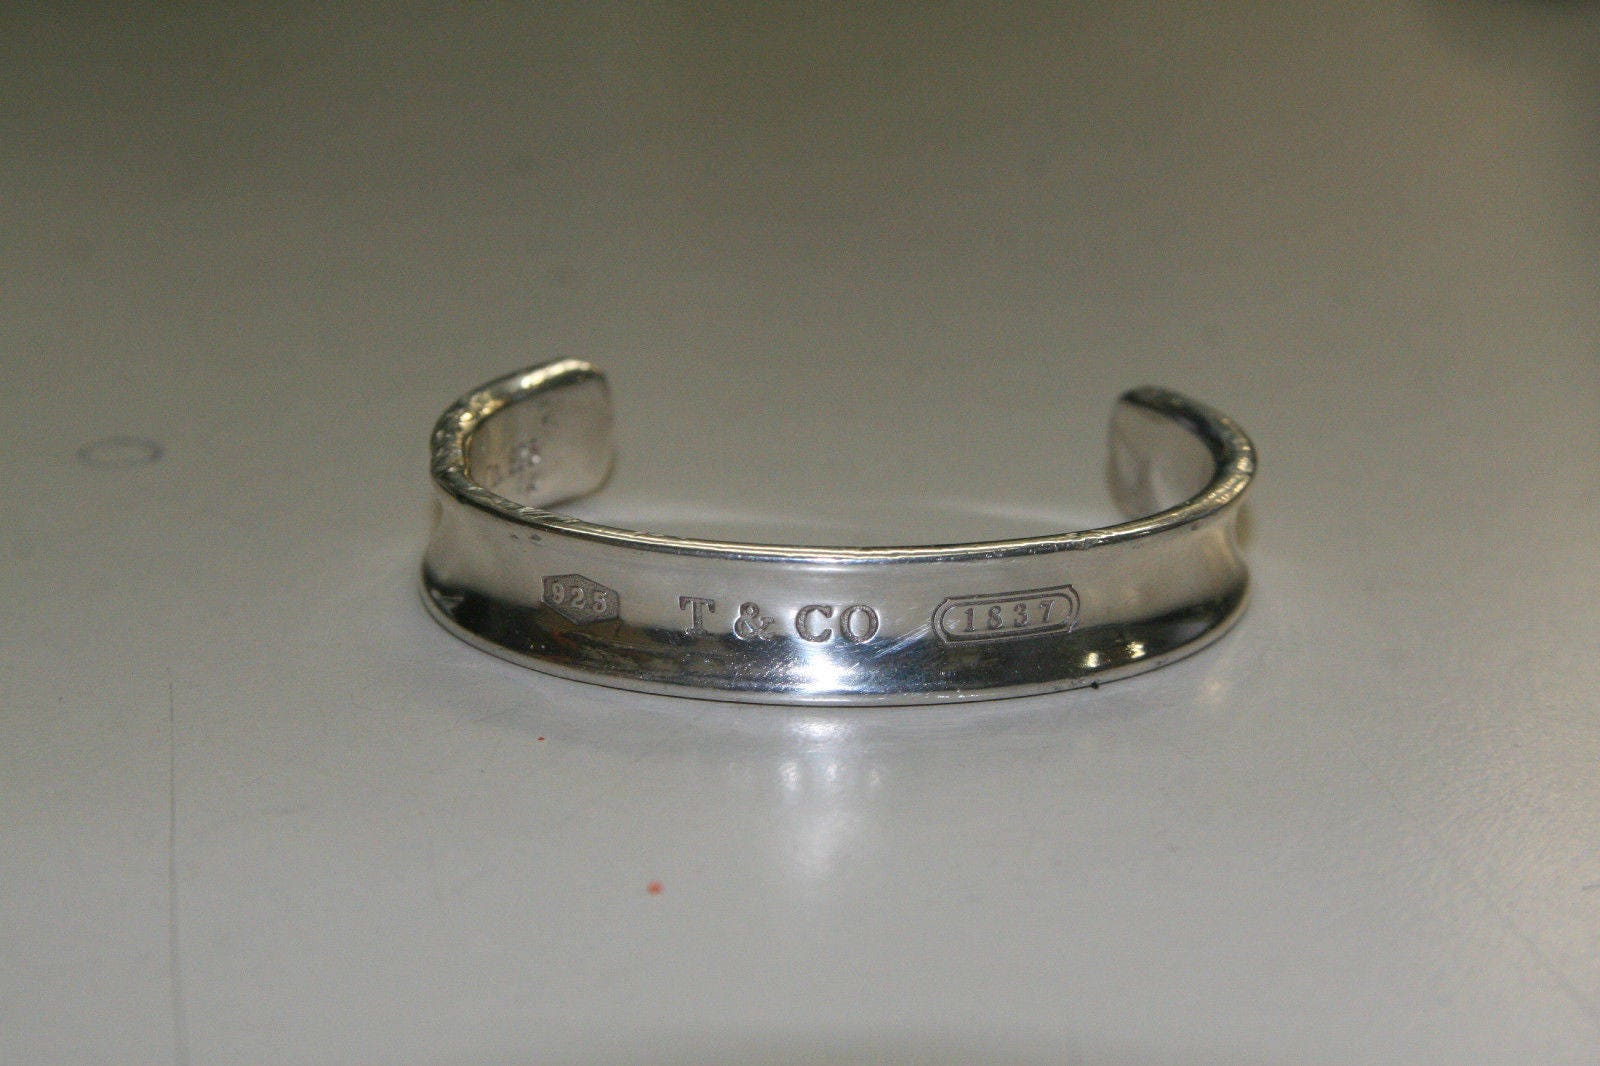 2c56c80b0 Tiffany & Co (T and CO) Sterling Silver 1837 Cuff Bangle Bracelet